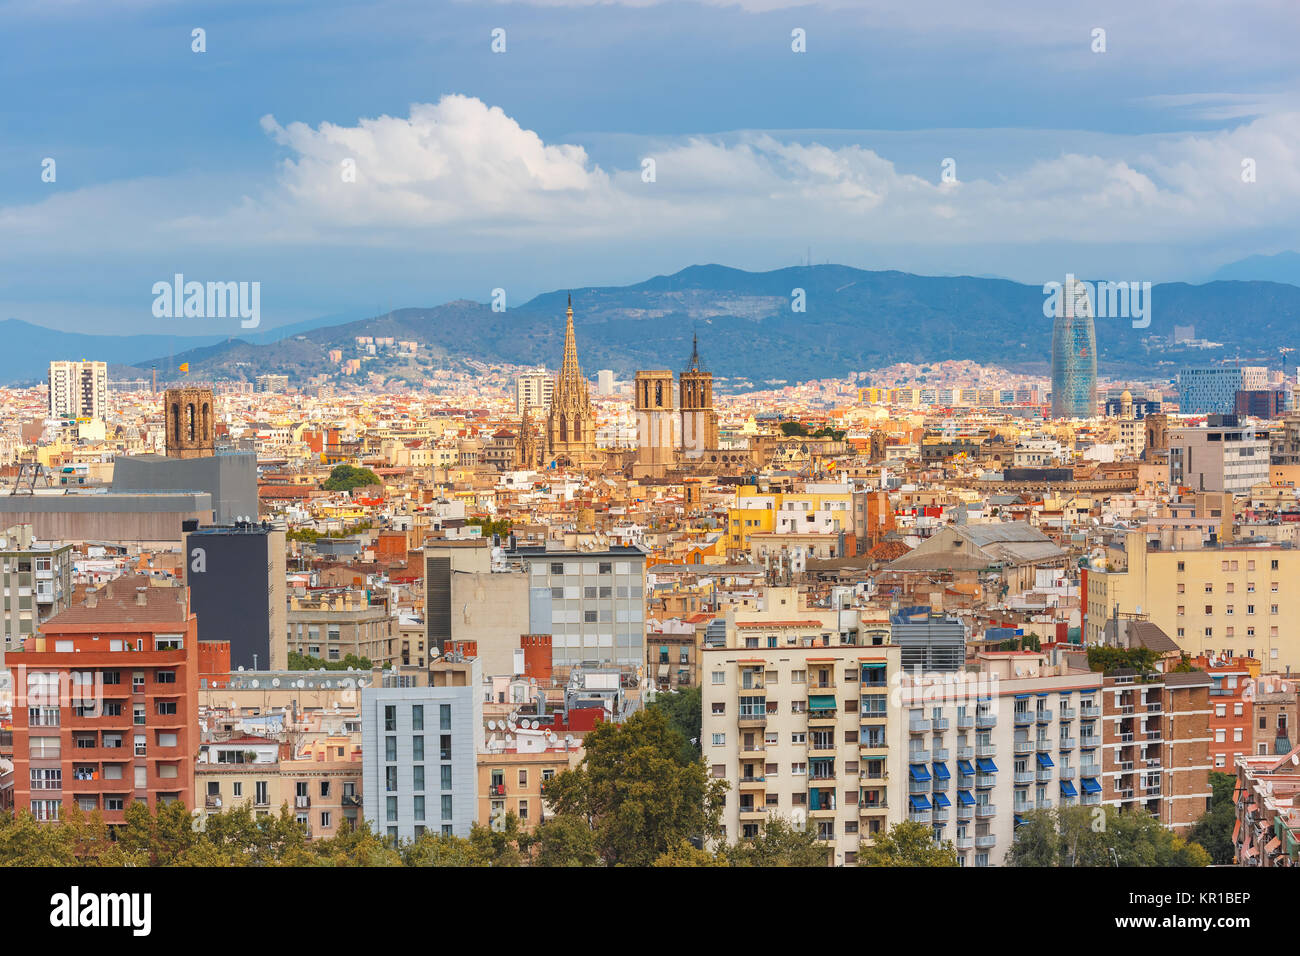 Aerial View Of Barcelona Catalonia Spain Stock Photo 169061390